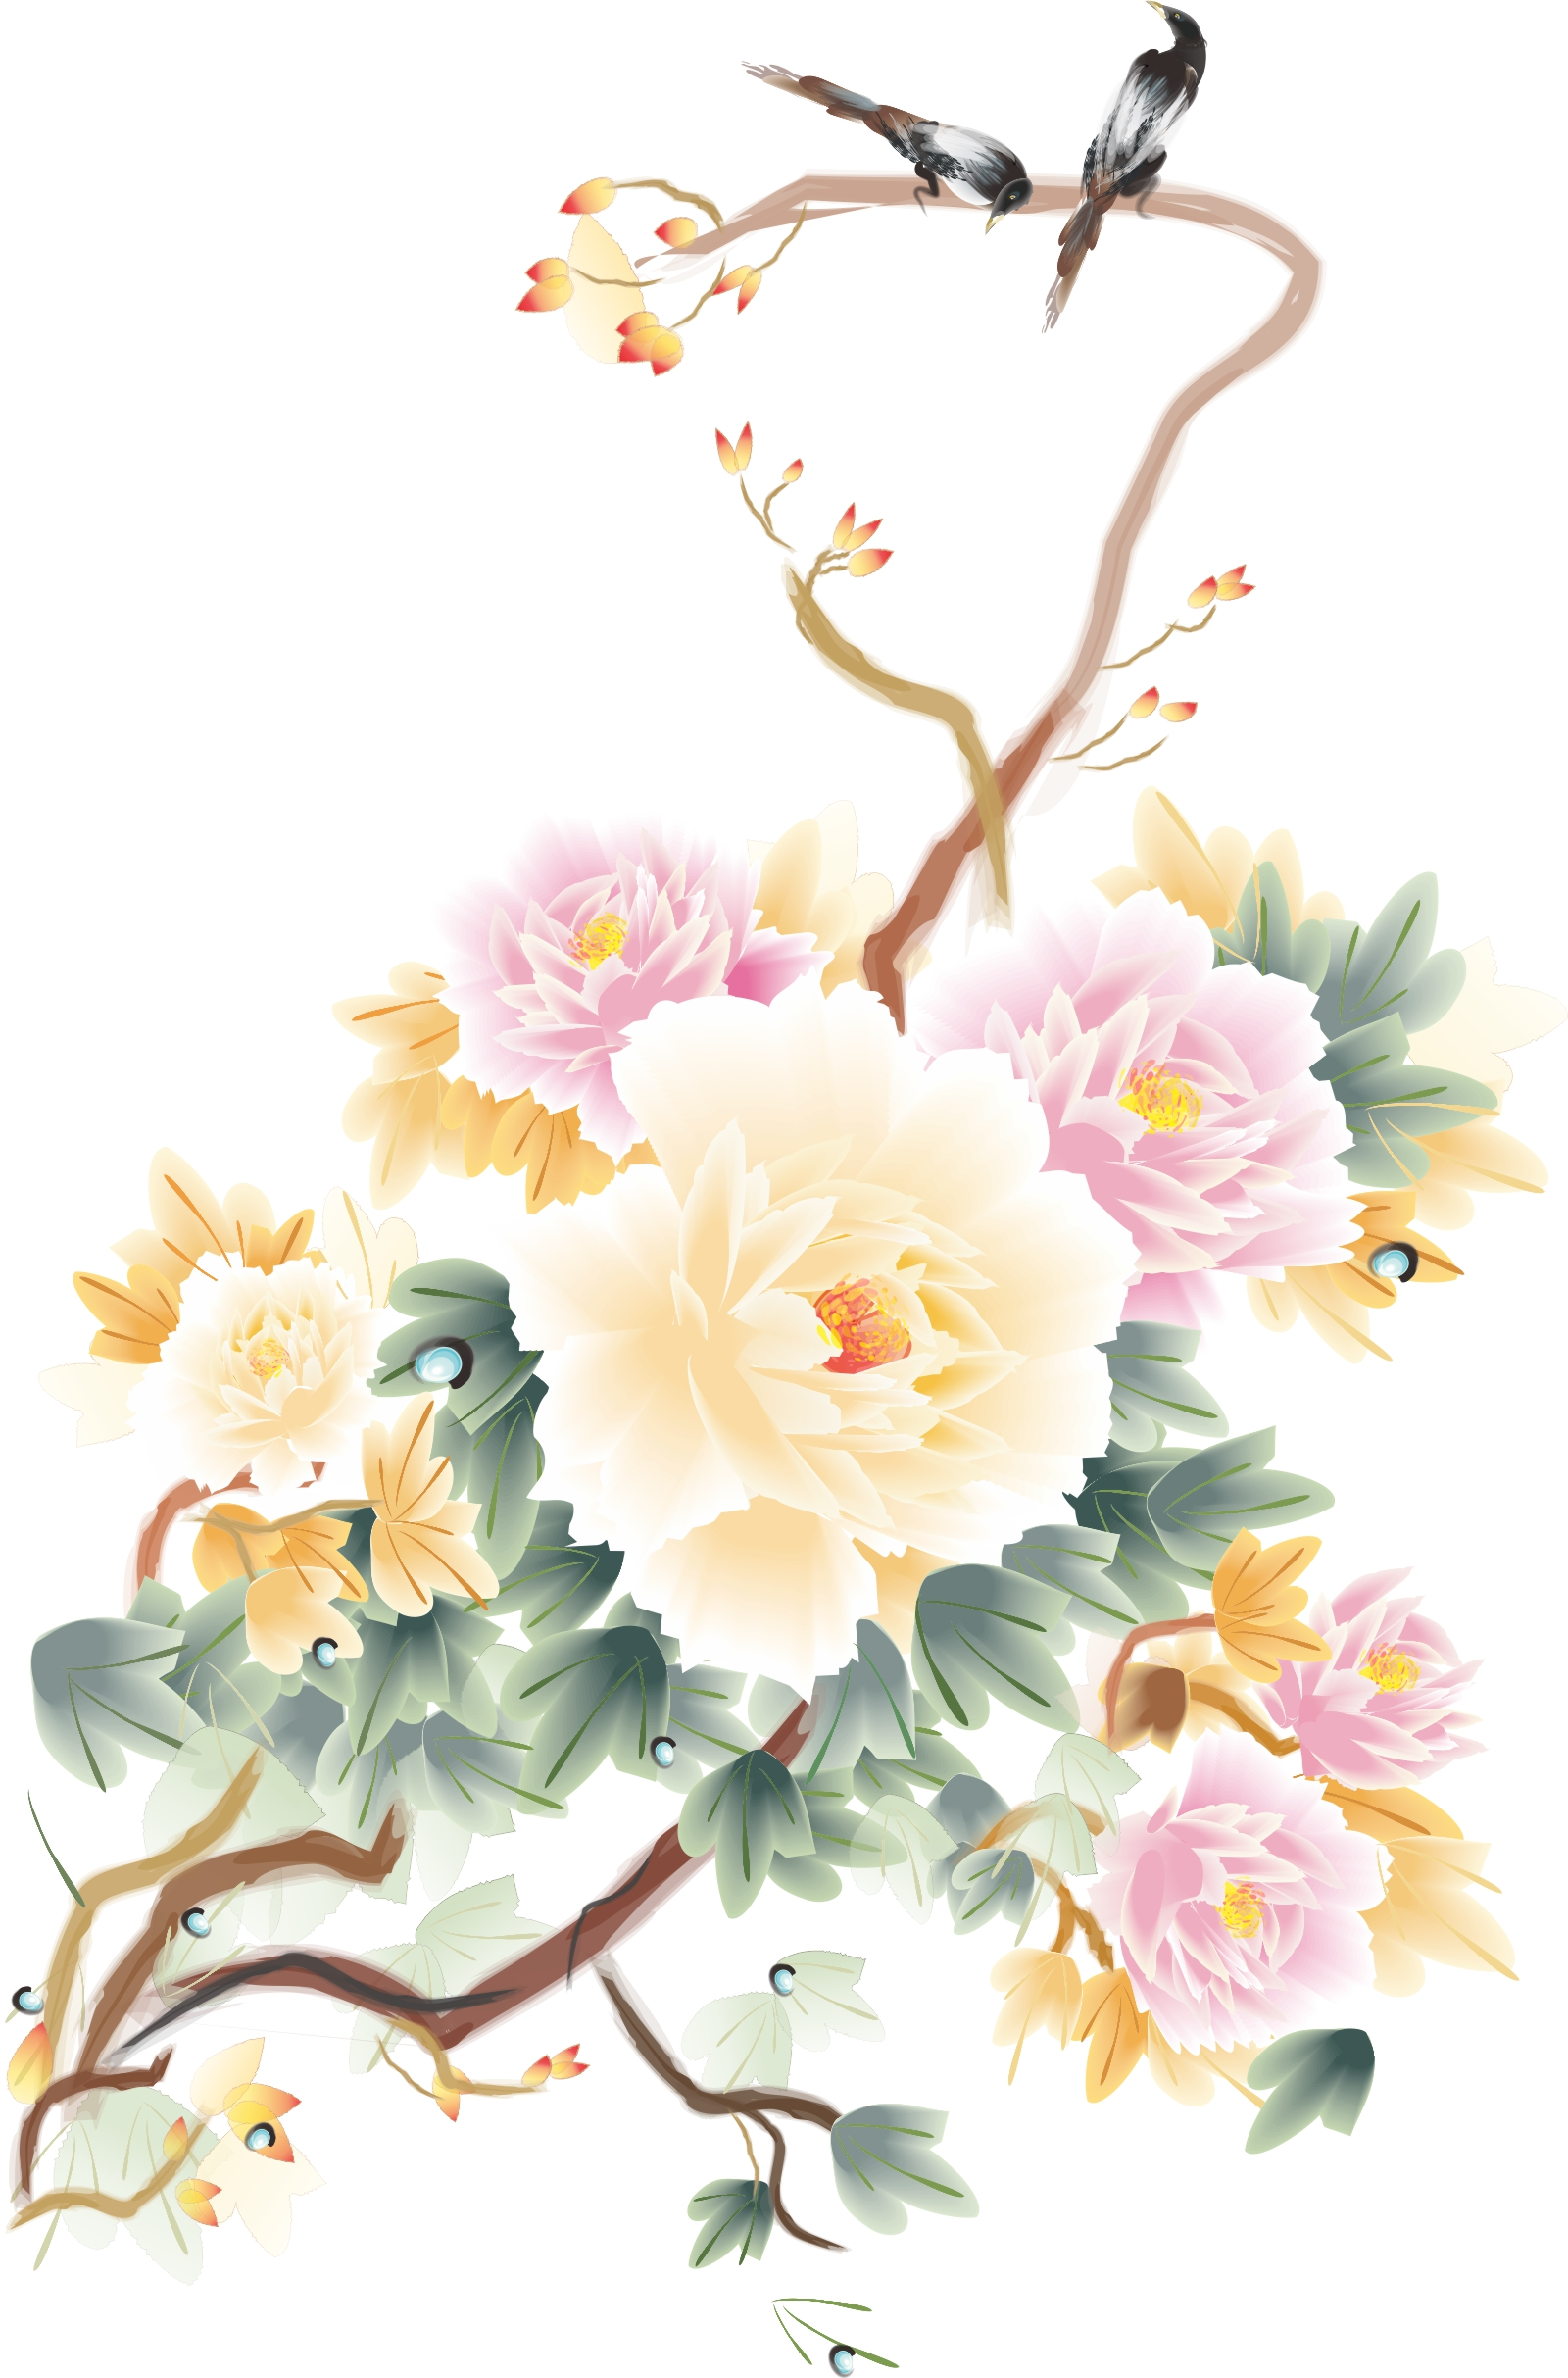 chinesefontdesign.com 2017 05 01 18 00 10 Peony flowers vector pictures China CorelDRAW Vectors CDR Free Download Peony Vectors Peony cdr Peony ai Chinese traditional painting art Vectors Chinese traditional painting art cdr Chinese traditional painting art Chinese ink painting cdr Chinese ink painting ai